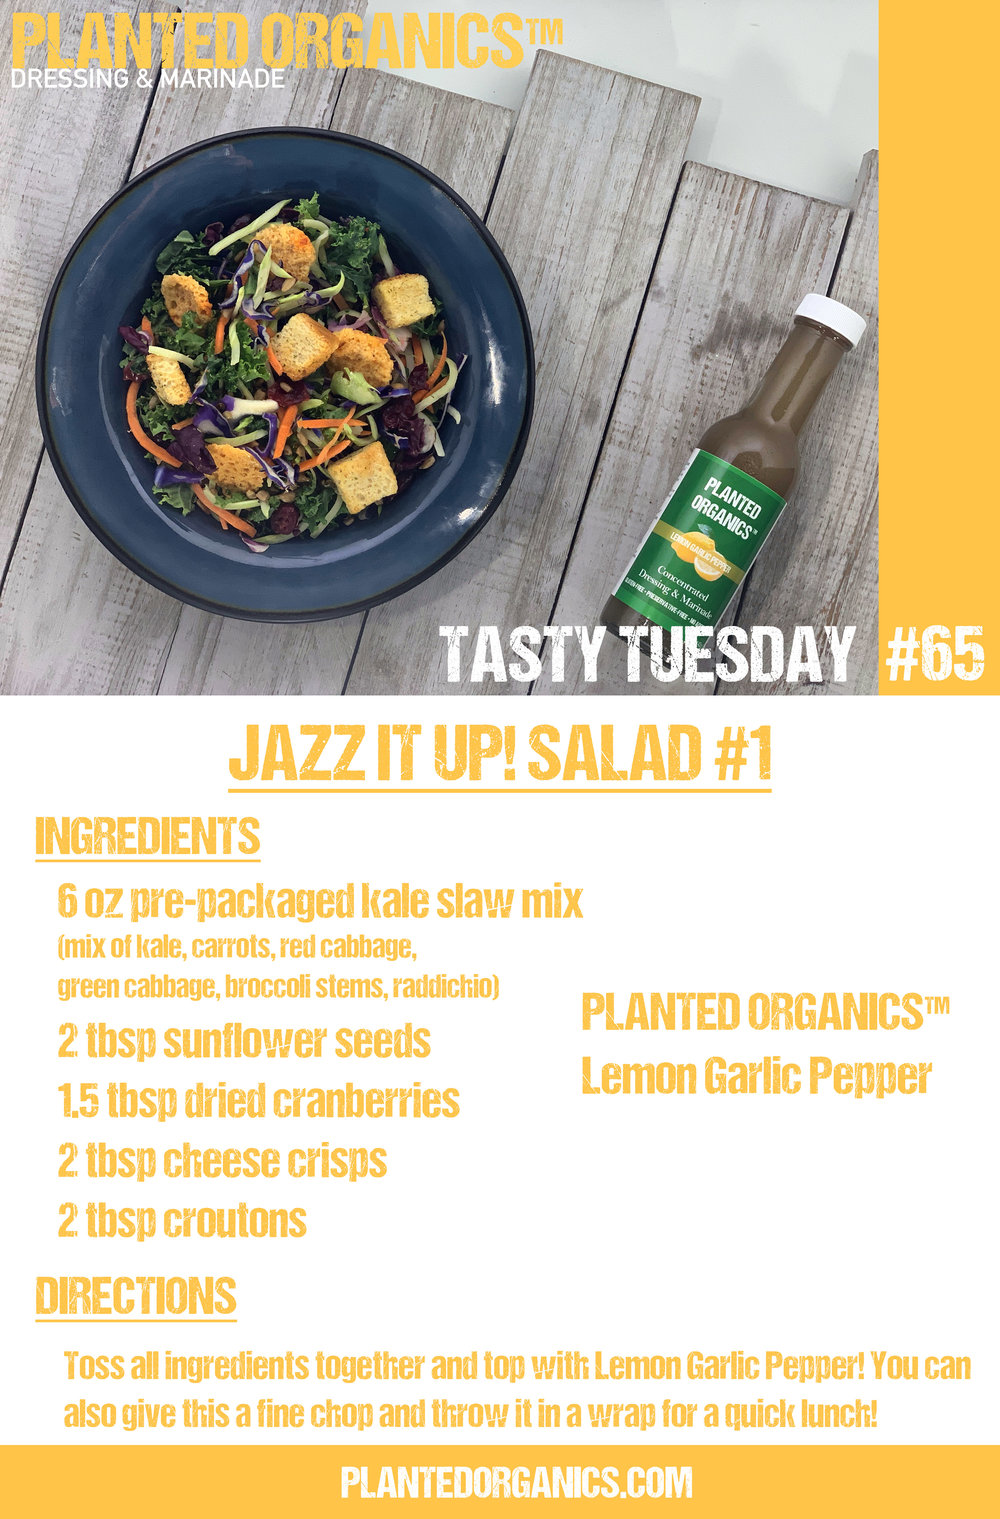 Tasty Tuesday #65! - This week is the first of our Jazz it Up! salads. Here we take a pre-packaged salad mix readily available at any local grocer, add a few ingredients and make it shine! Enjoy!